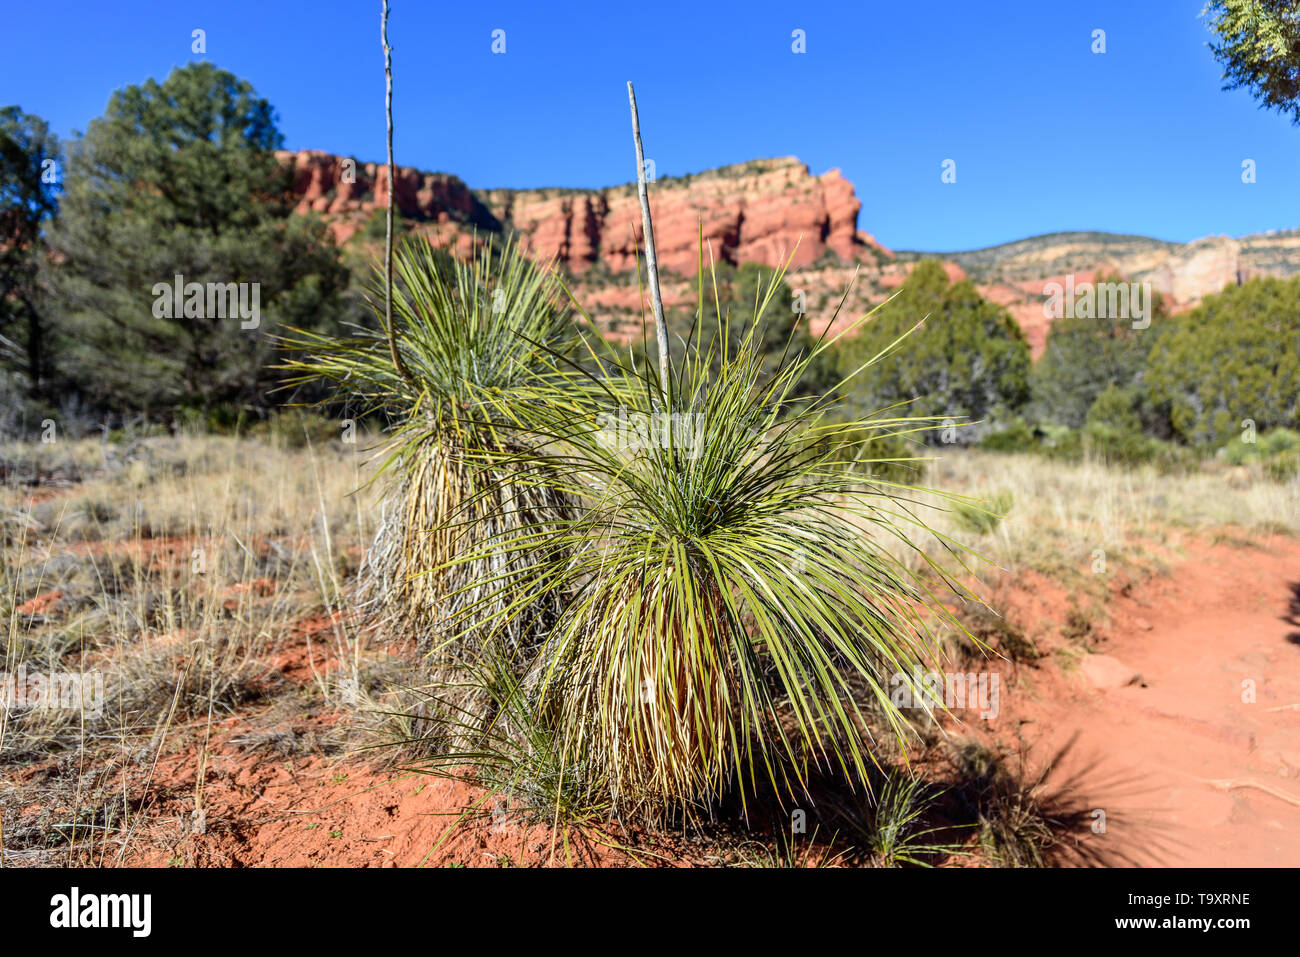 Two young soaptree yuccas grow in the soft red sand of the Sedona desert. Clear blue skies - Stock Image